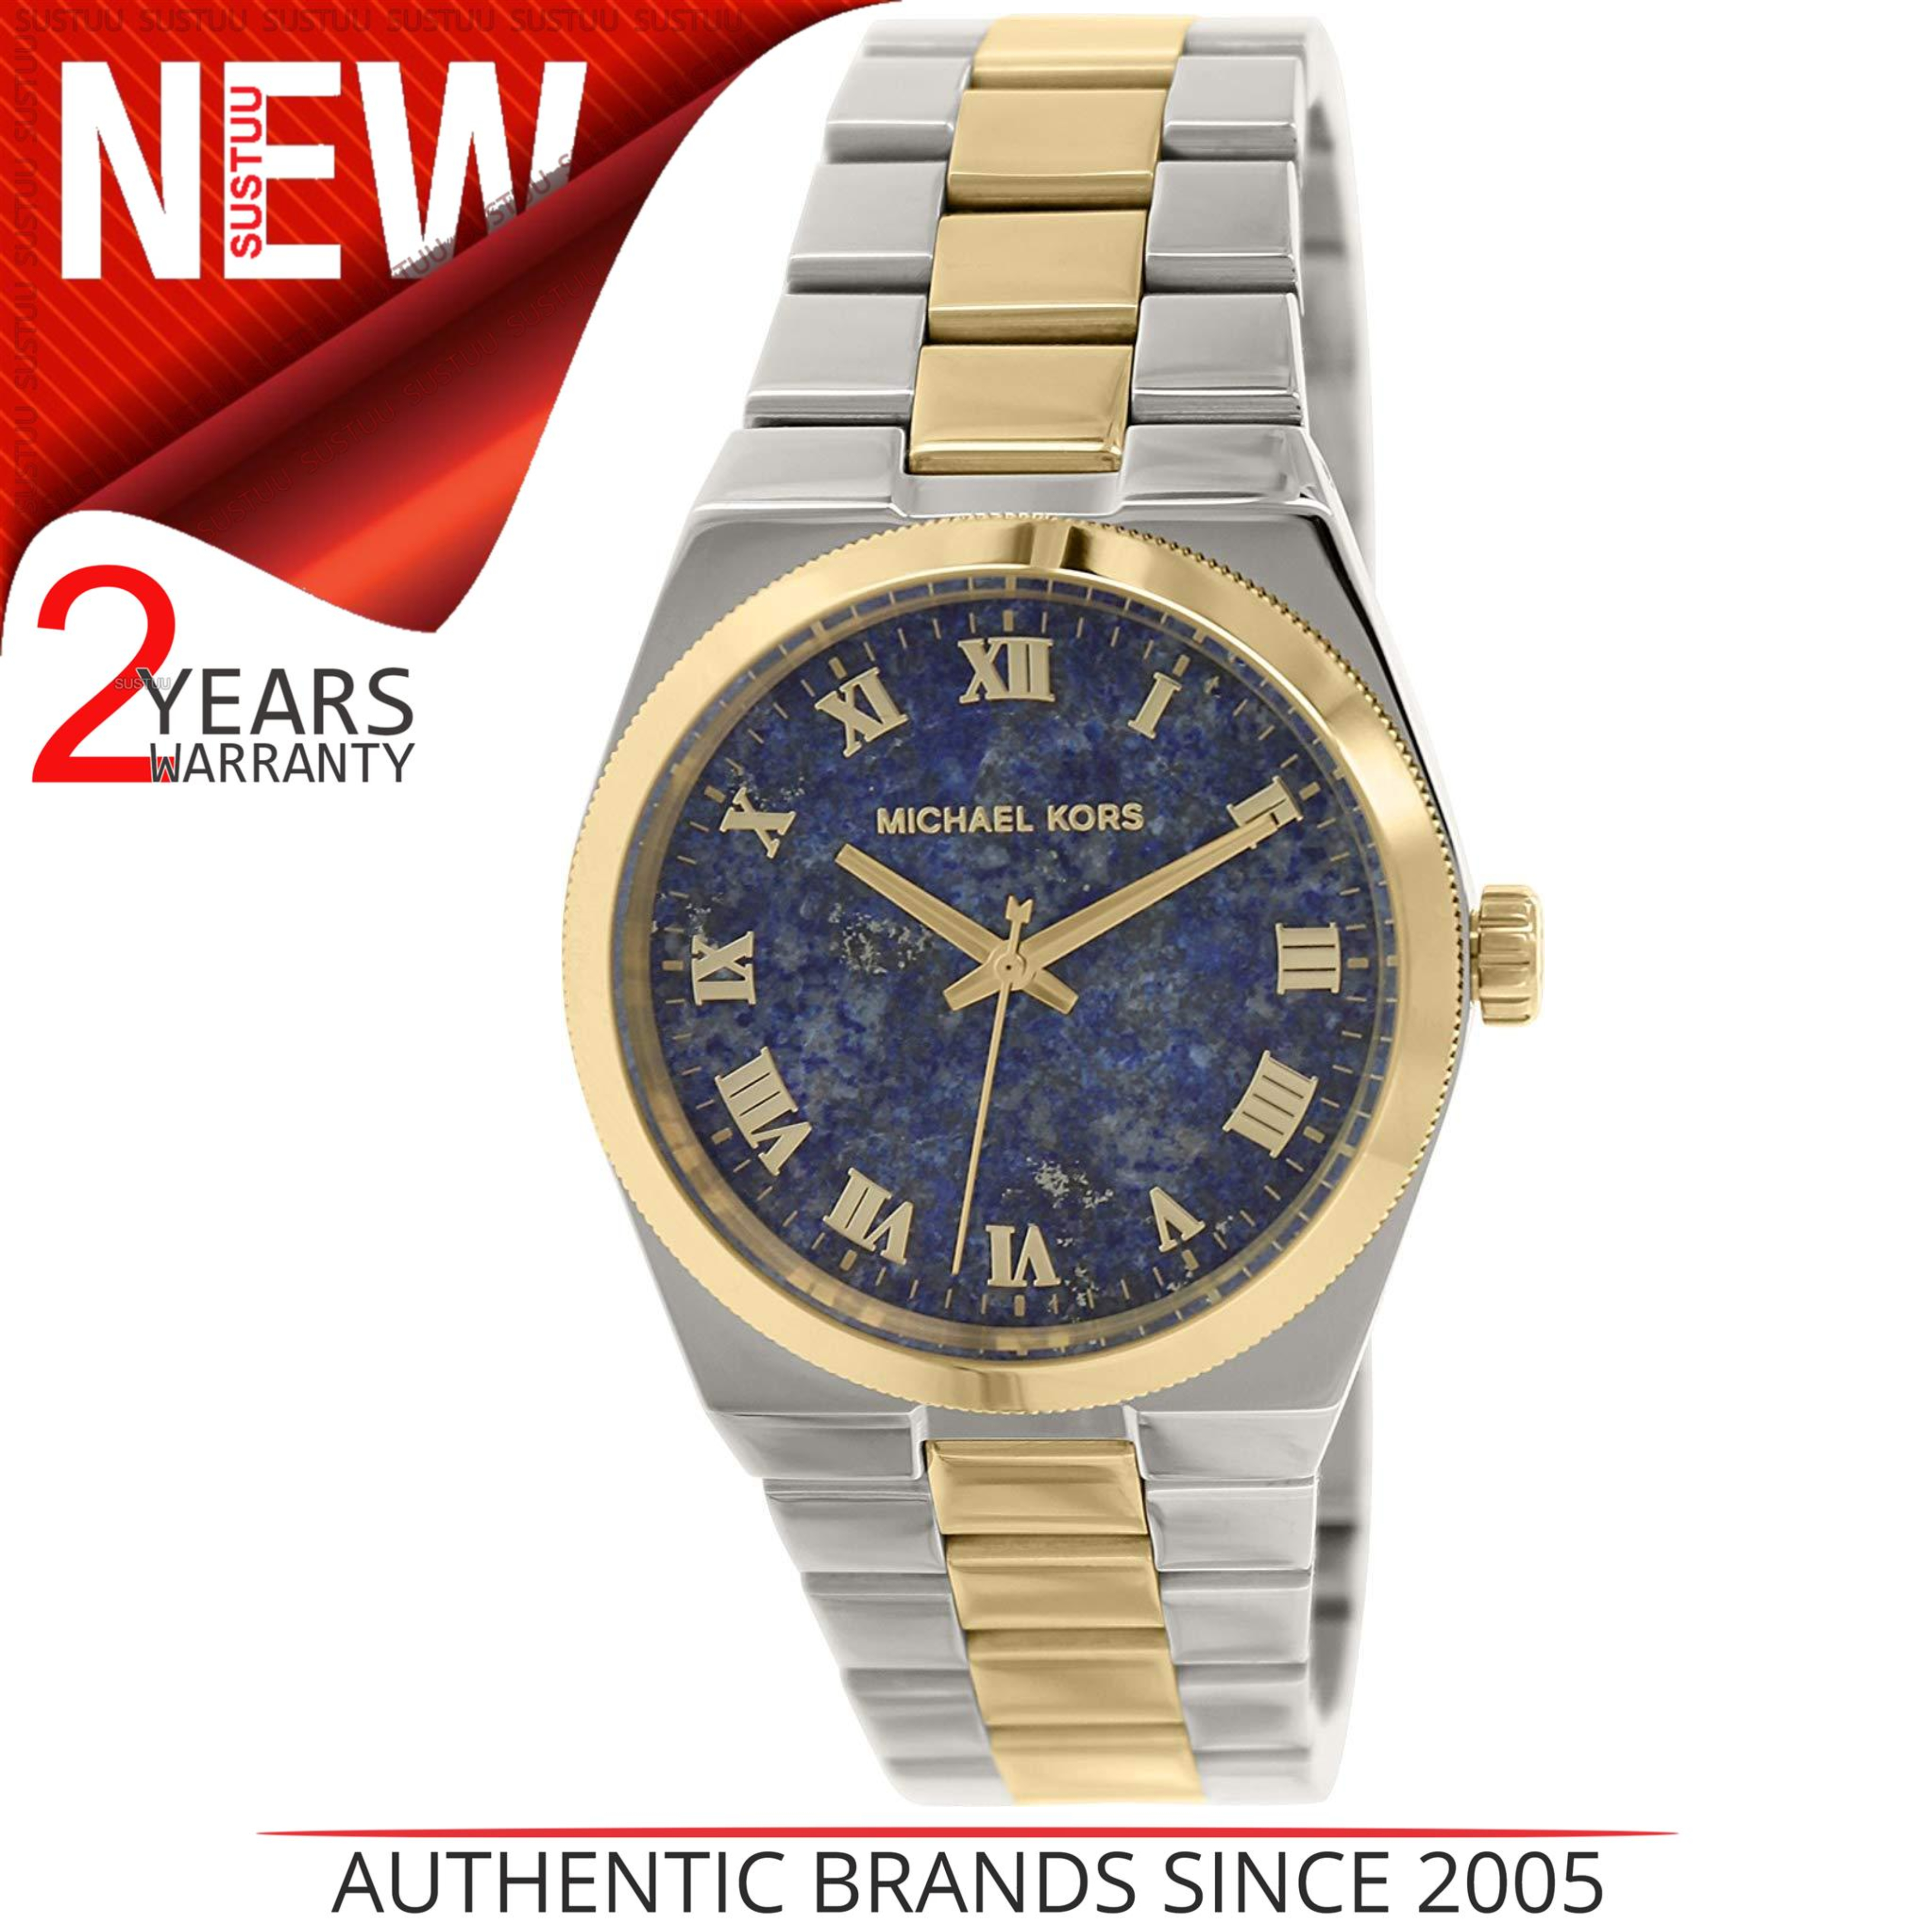 0d3ed7304f11 Details about Michael Kors Mercer Channing Blue Lapis Dial 2 Tone Luxurious  Women Watch MK5893